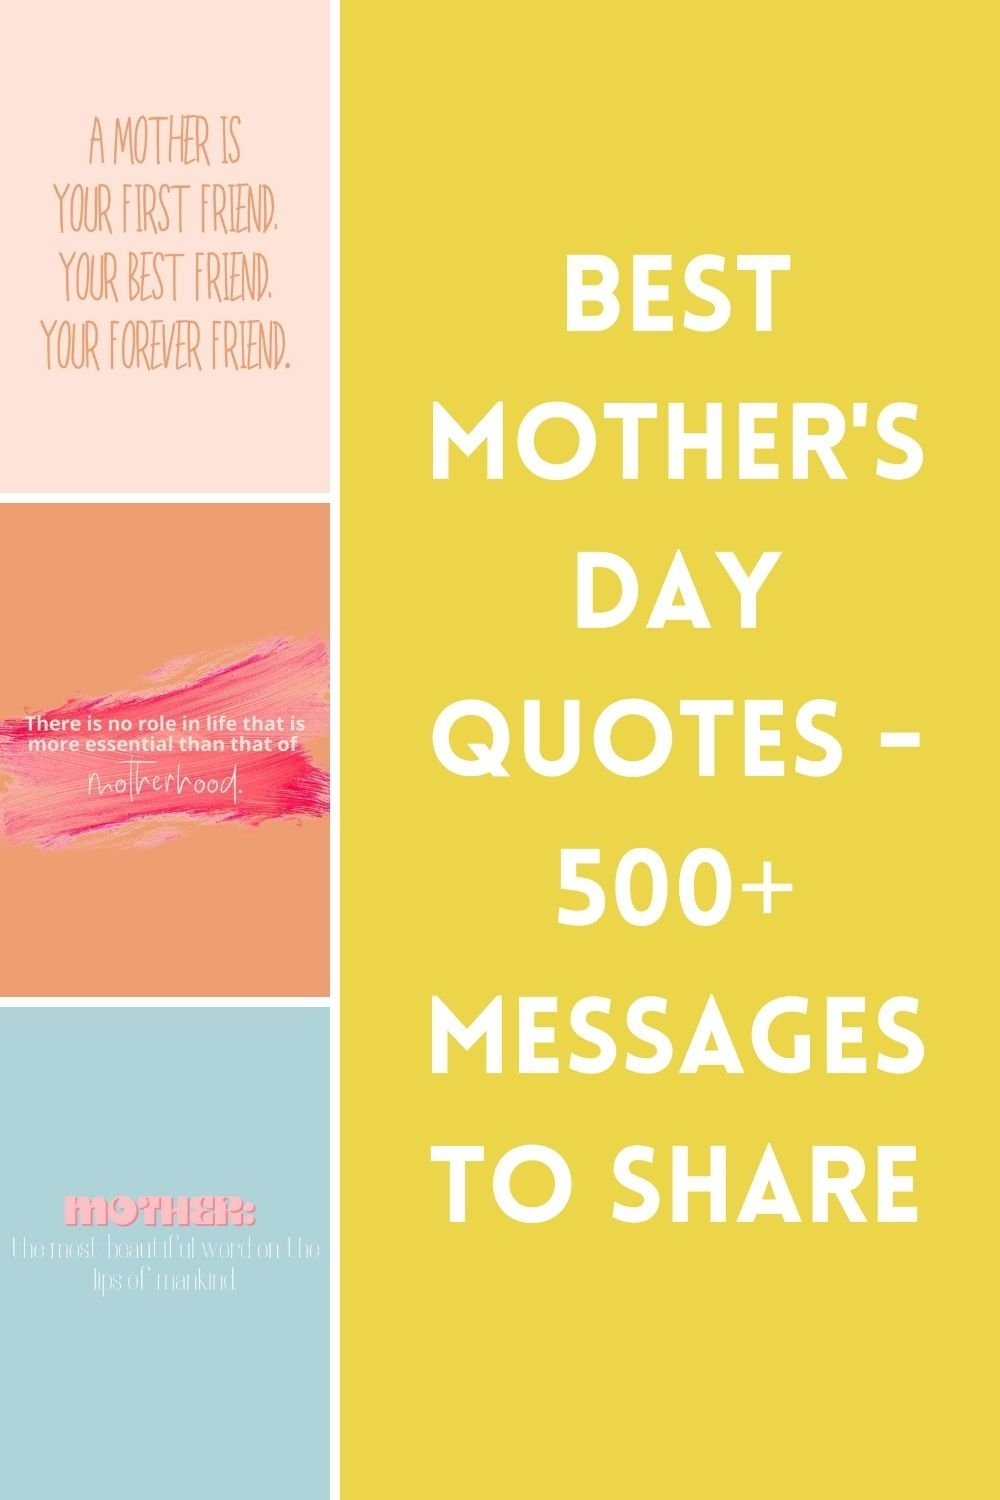 500+ Best Mother's Day Quotes